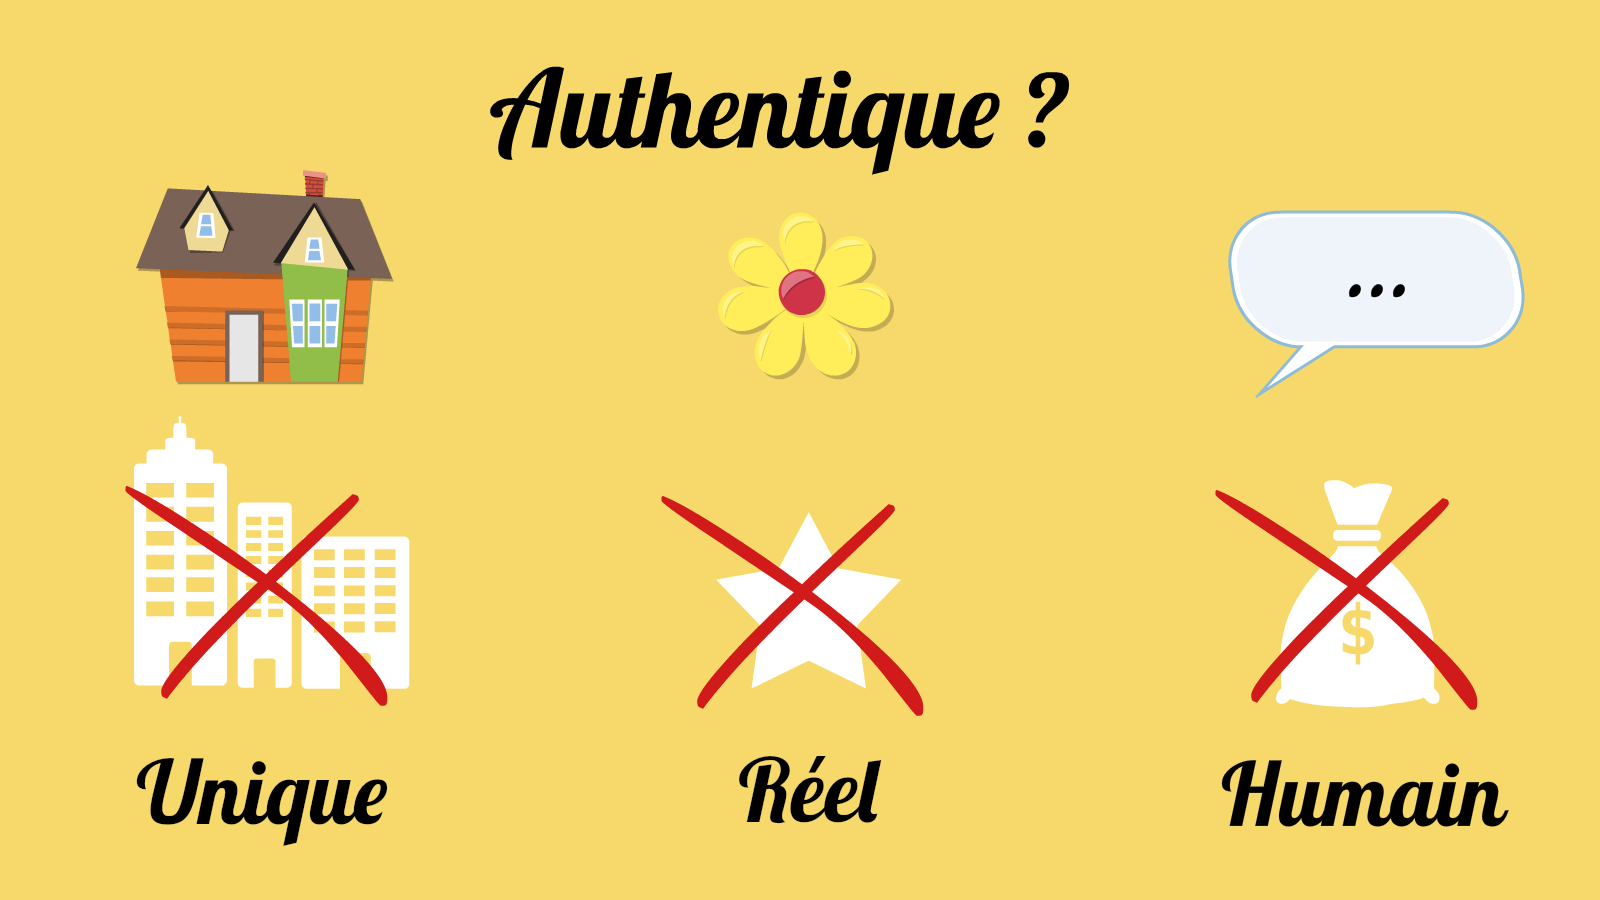 Authentique-definition